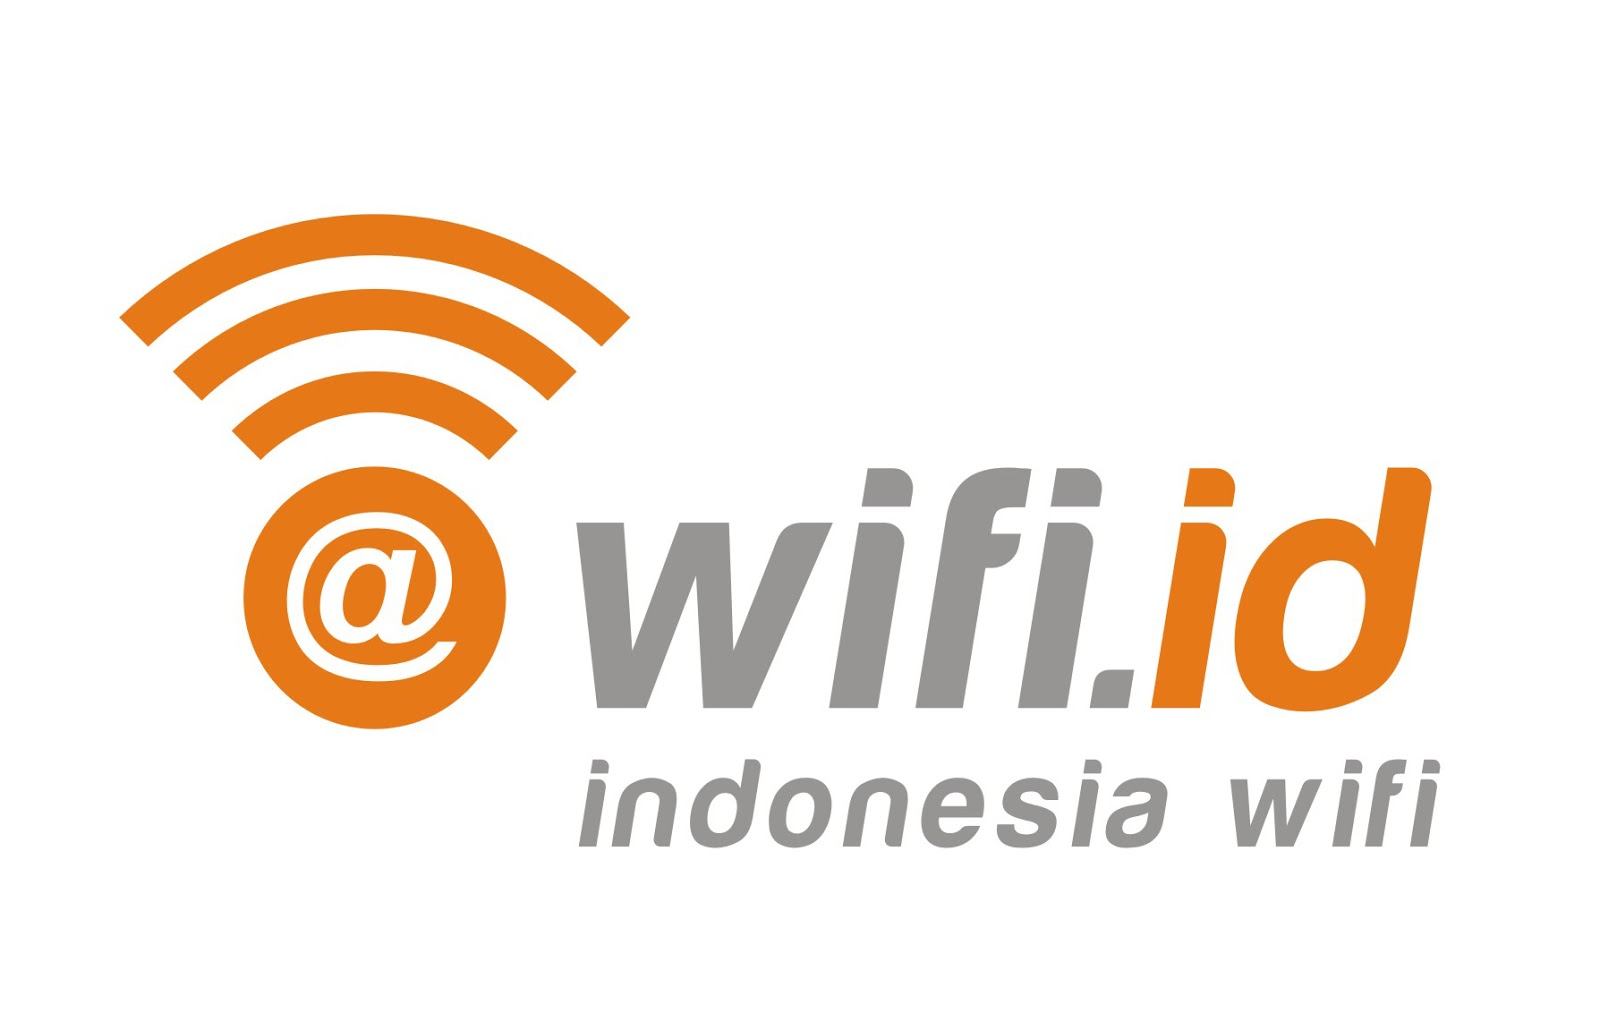 cara connect ke wifi id